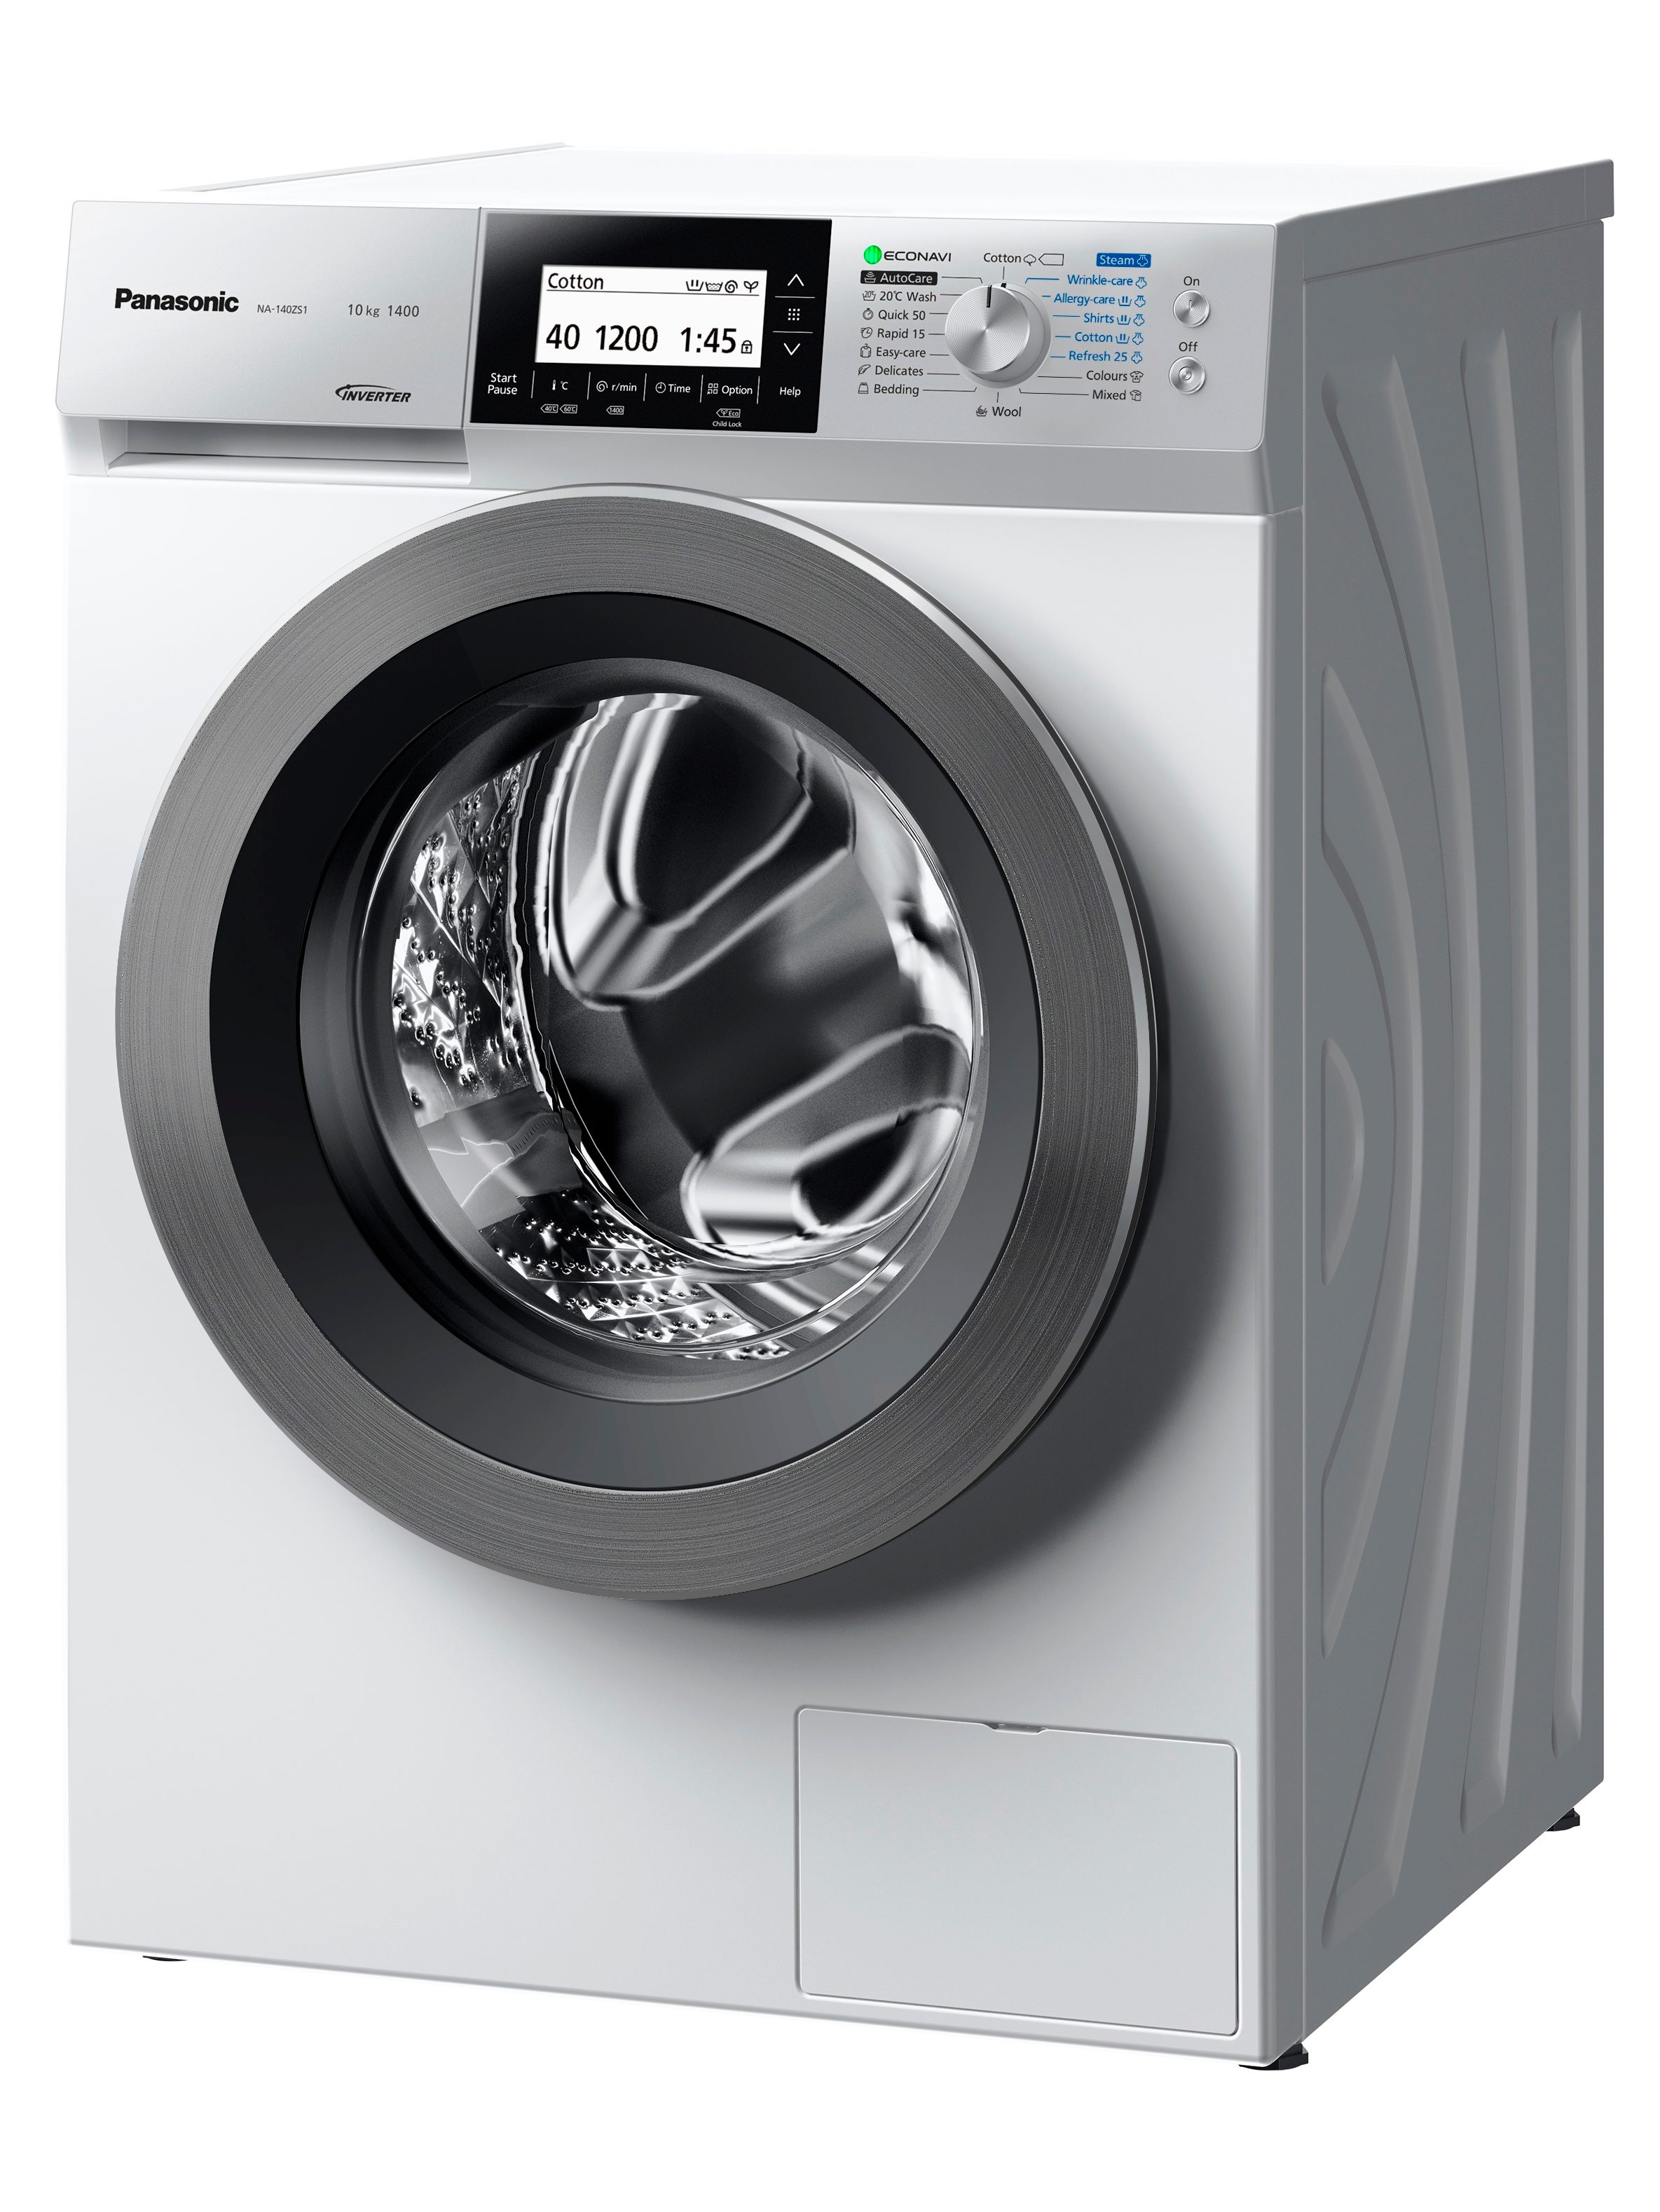 gold award for the smart and economical washing machine designed by innovators